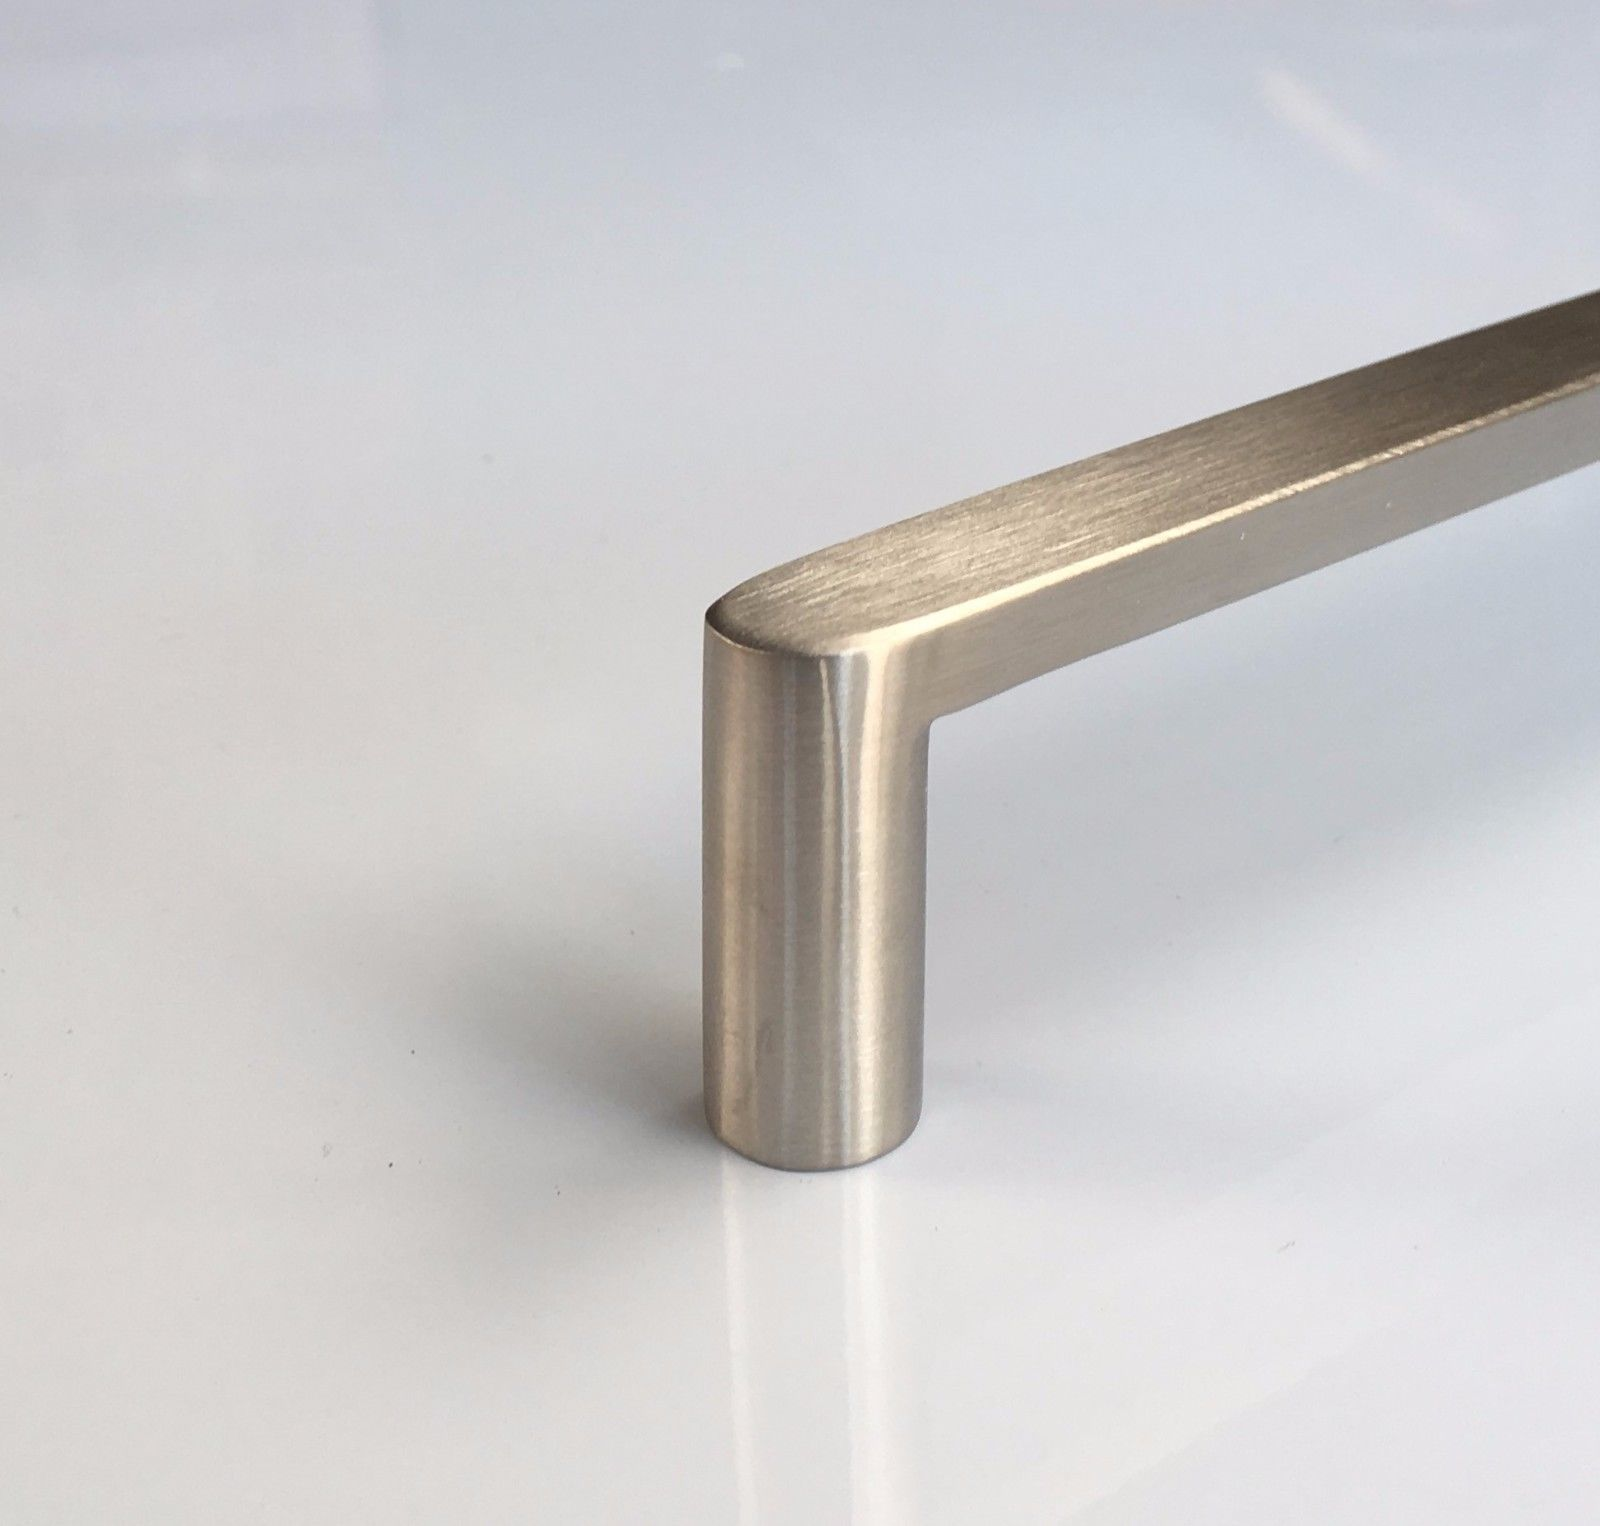 Solid Stainless Steel Brushed Kitchen Cabinet Door Drawer